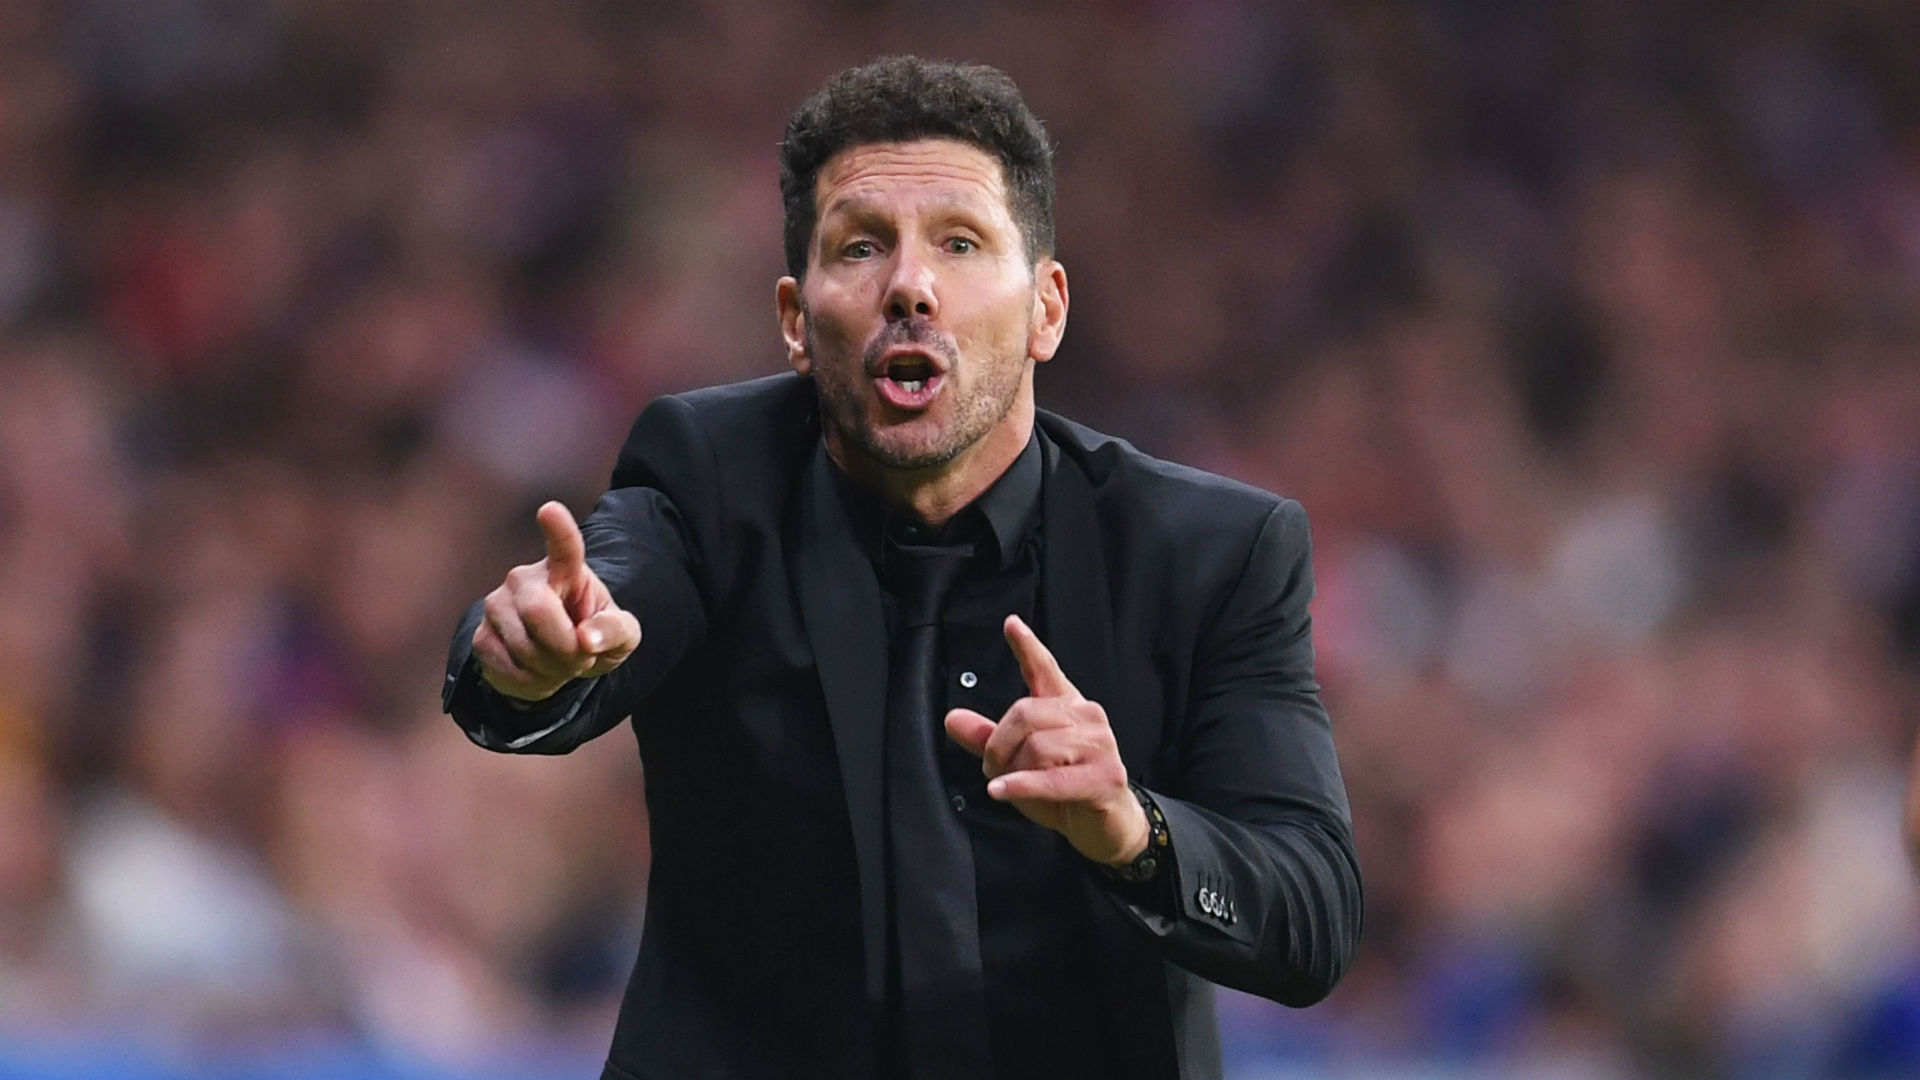 Simeone rallies misfiring Atletico Madrid ahead of crucial Champions League clash